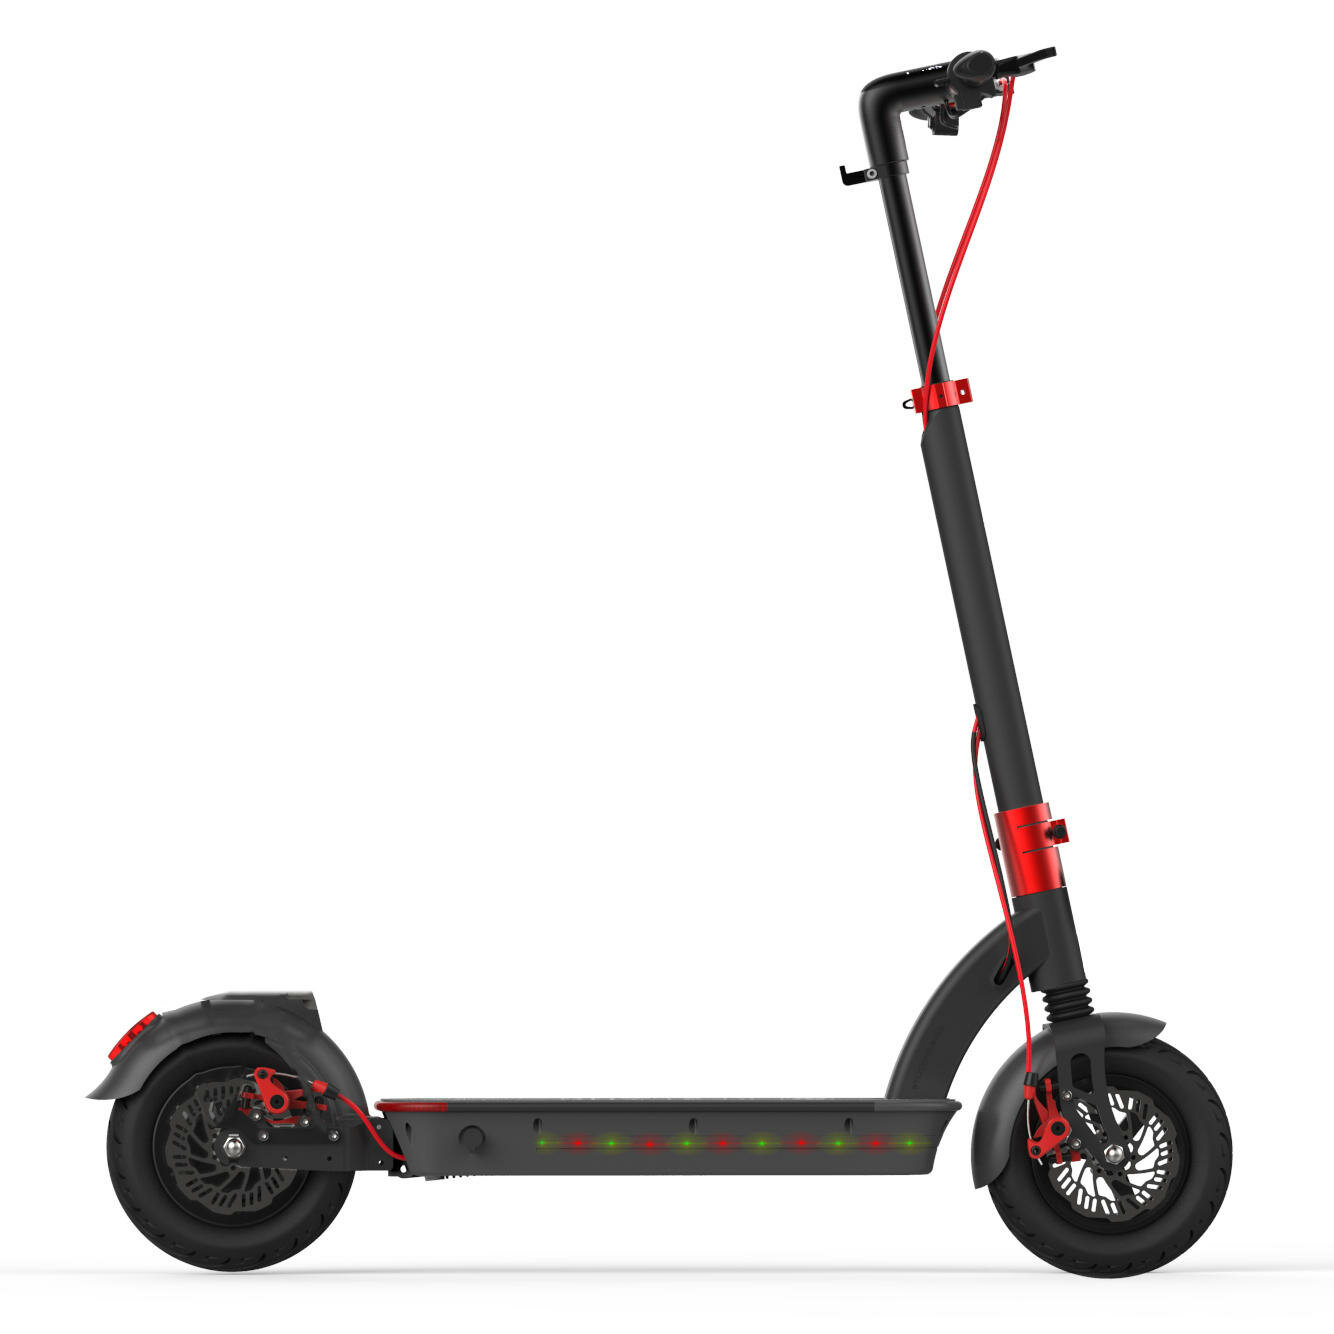 Aerlang H6 48V 500W 17.5A Folding Electric Scooter 10inch 40km/h Top Speed 50-60km Mileage Range Max. Load 120kg Two Wheels Electric Scooter